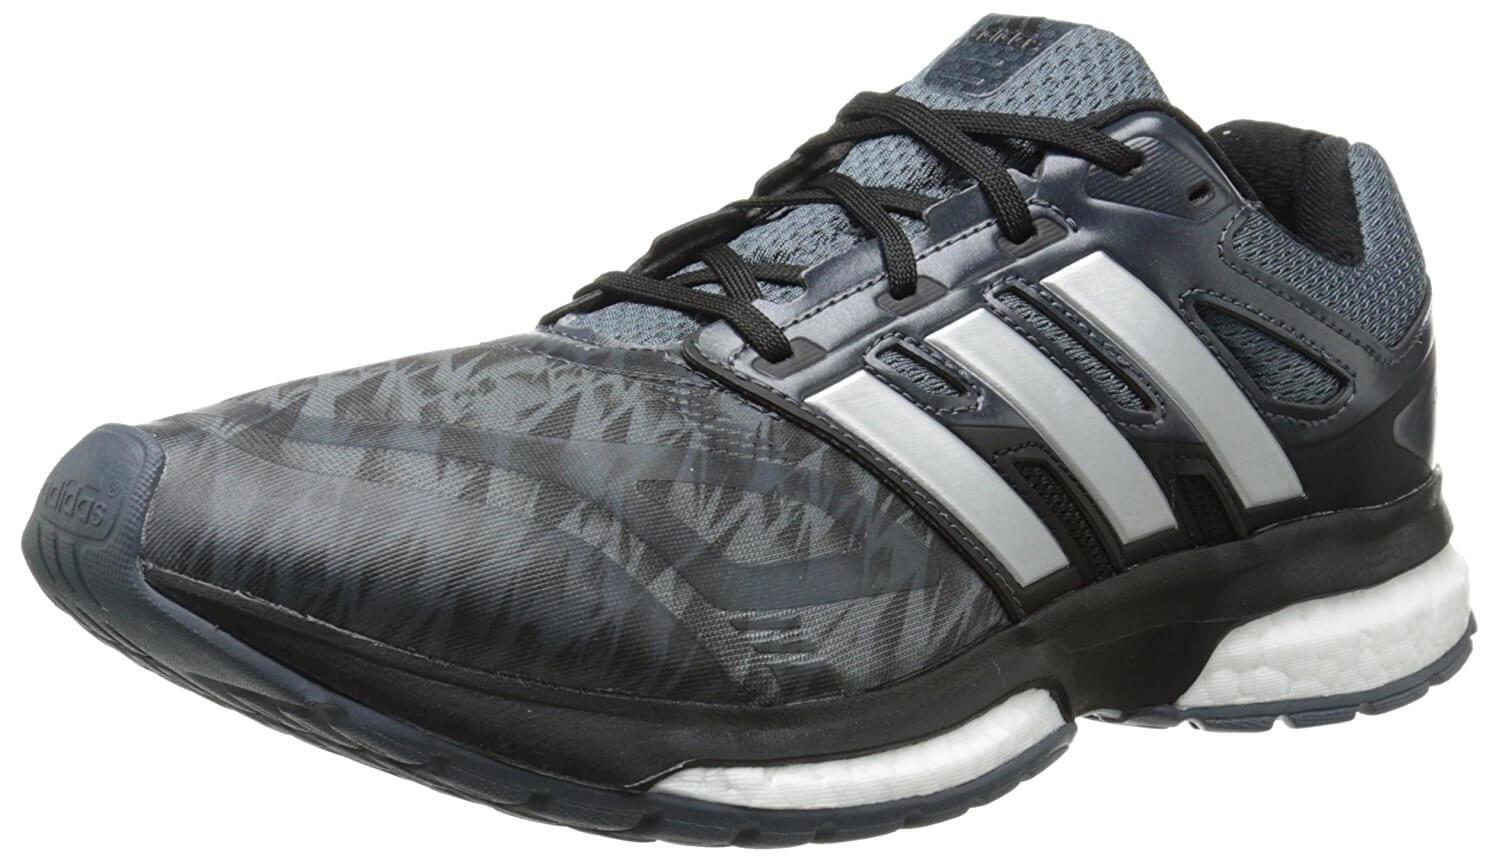 7. Adidas Performance Response Boost 2 Techfit